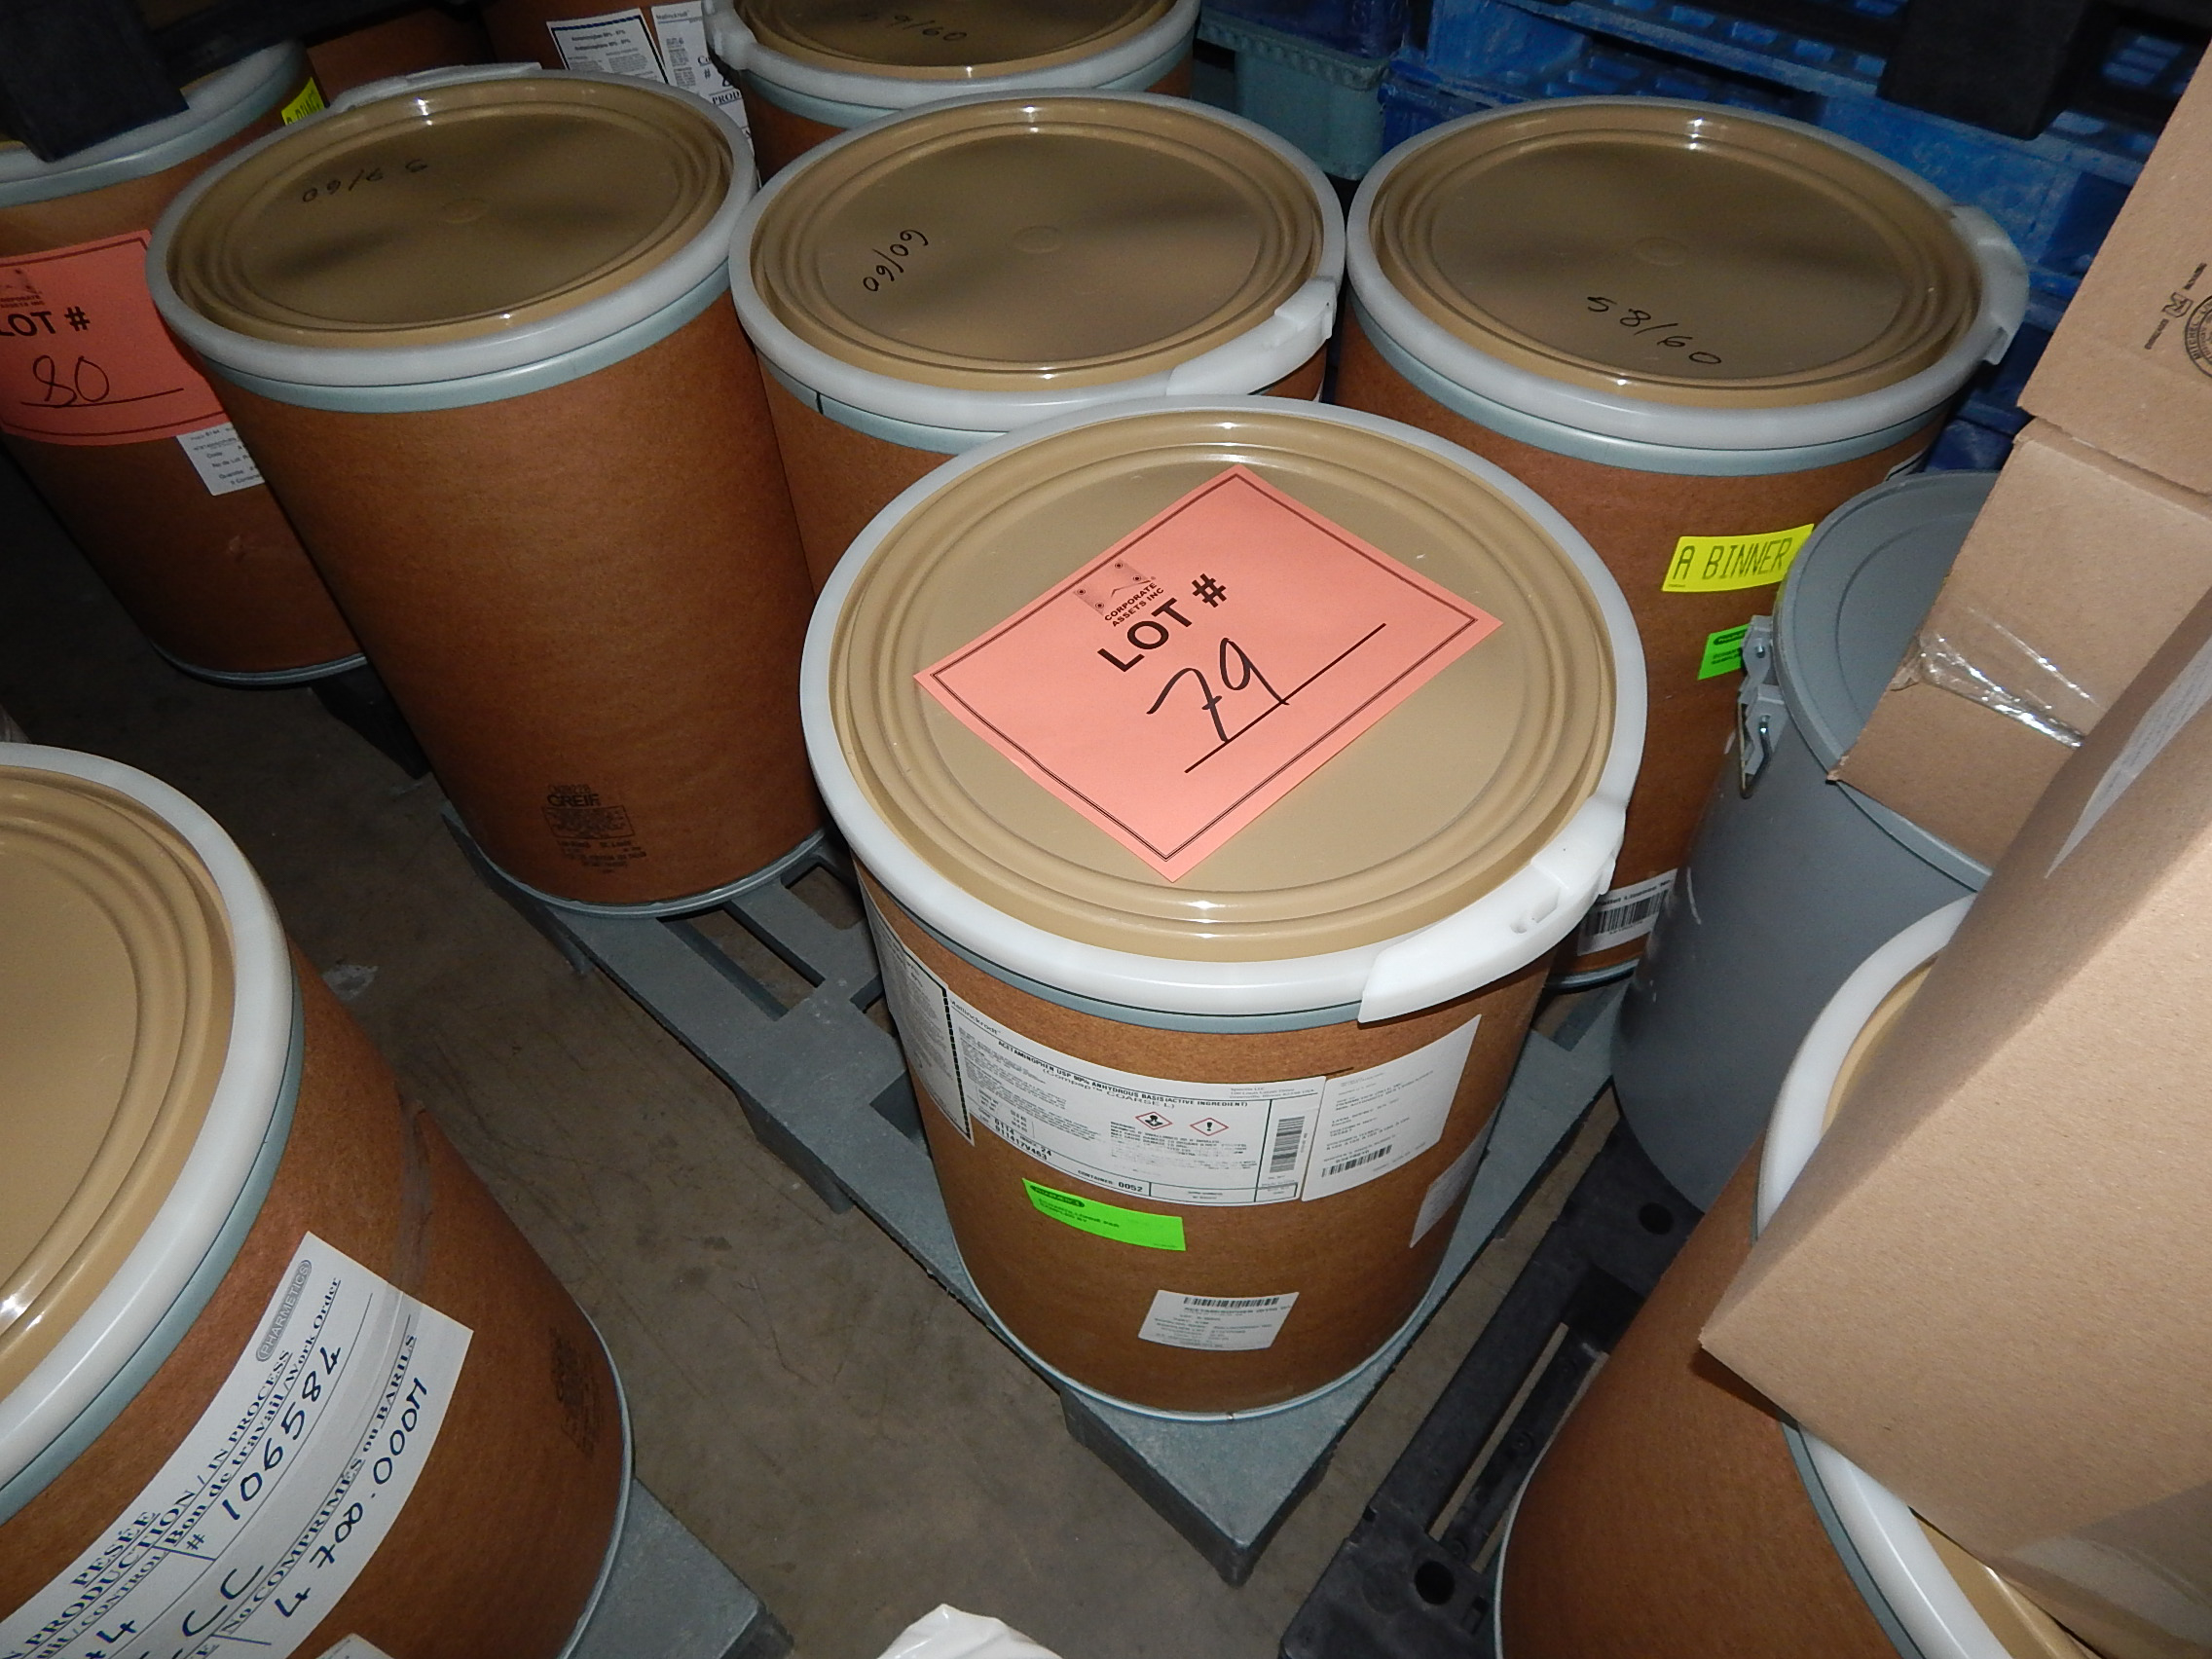 Lot 79 - LOT/ SKID WITH CONTENTS CONSISTING OF 50KG DRUMS OF ACETAMINOPHEN